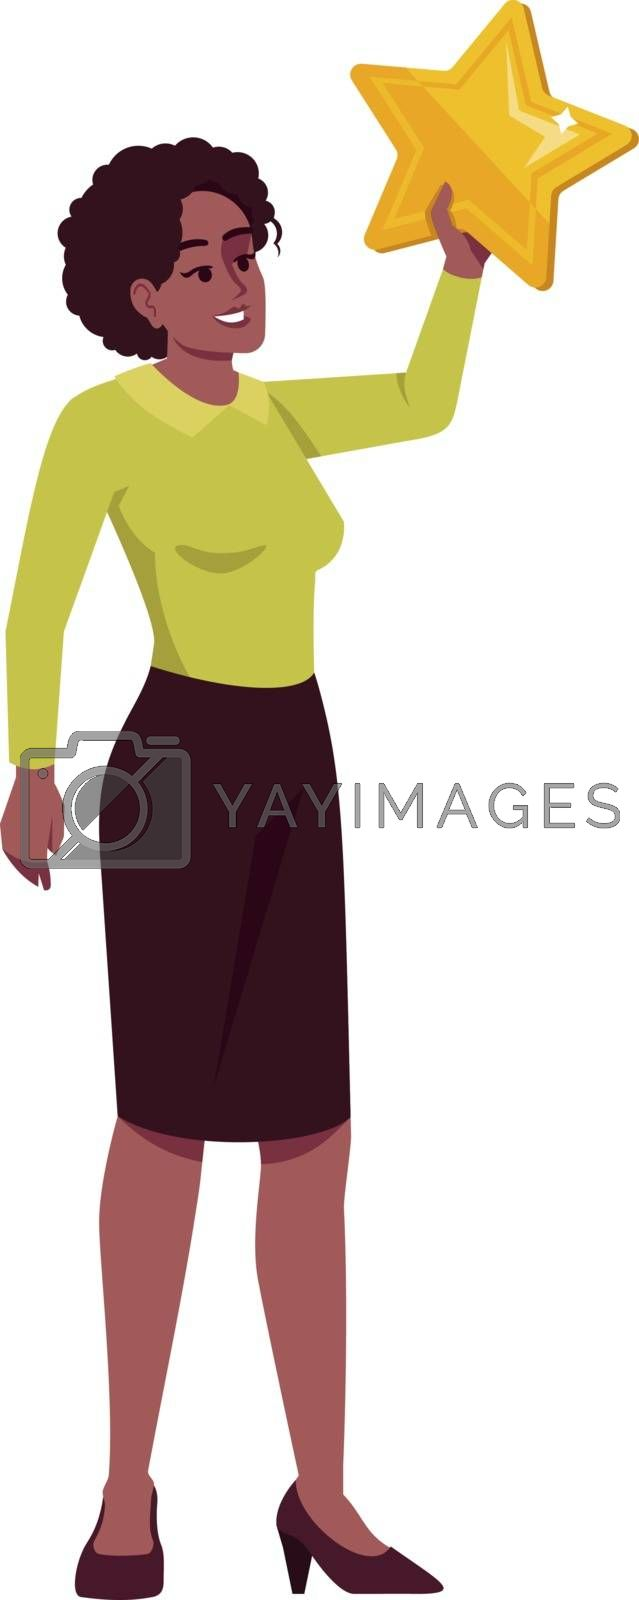 Successful female entrepreneur semi flat RGB color vector illustration. Happy businesswoman holding star isolated cartoon character on white background. Celebrating goal achievement concept